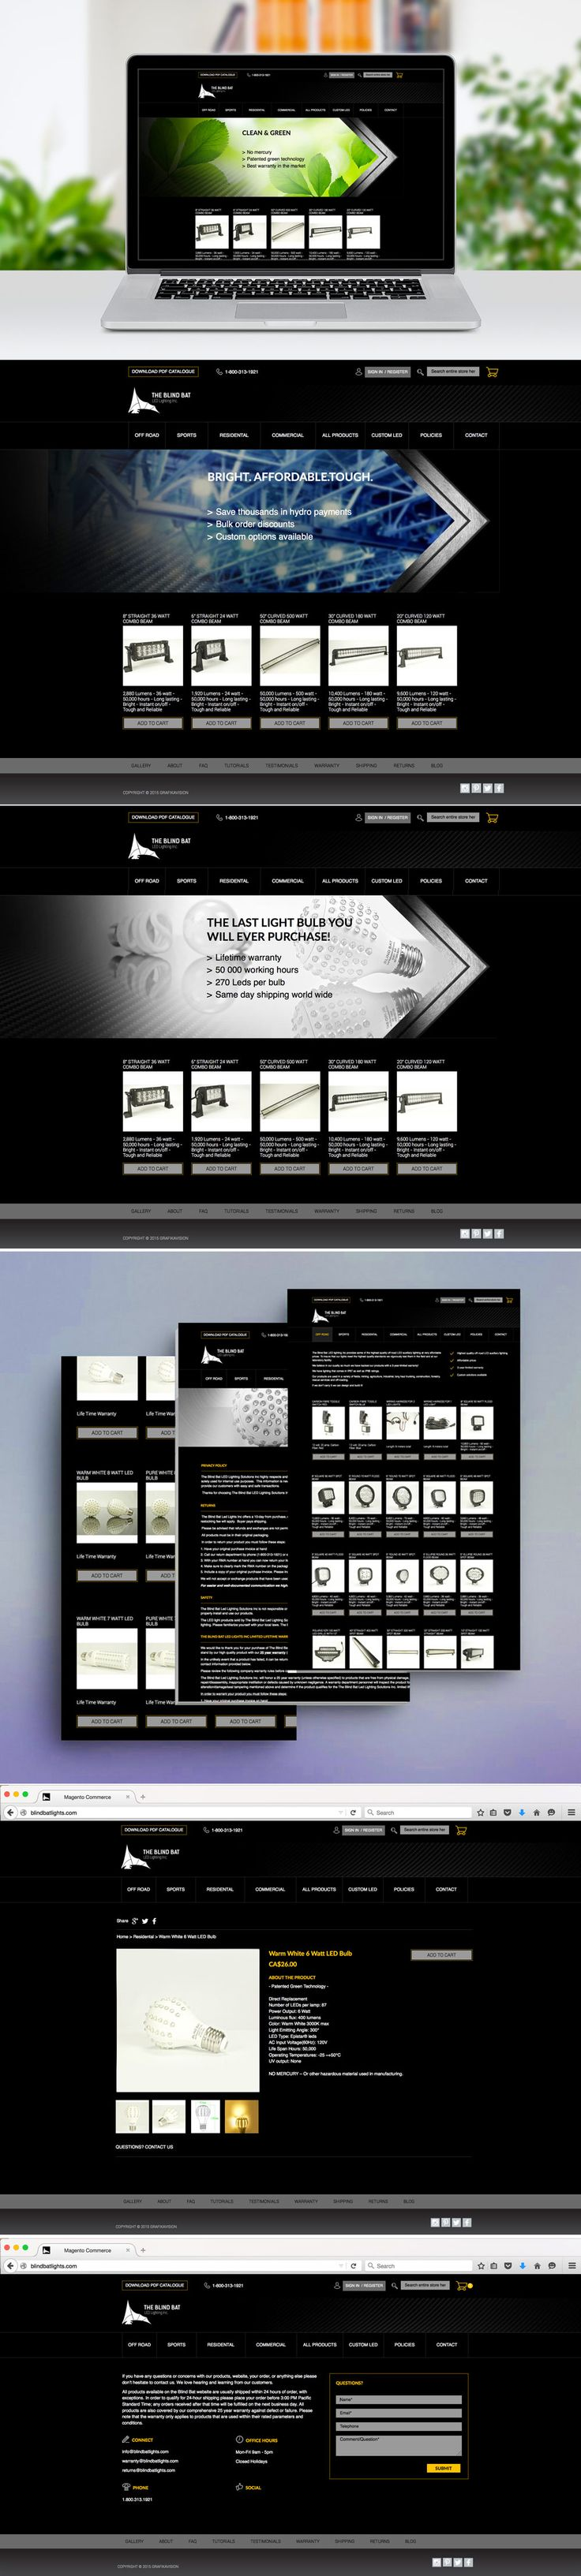 The Blind Bat Led Lighting Solutions Inc is a manufacturer, retailer, and distributor of LED lighting and accessories. Grafikavision team worked with Blind Bat Lighting to create a custom e-commerce Magento website.